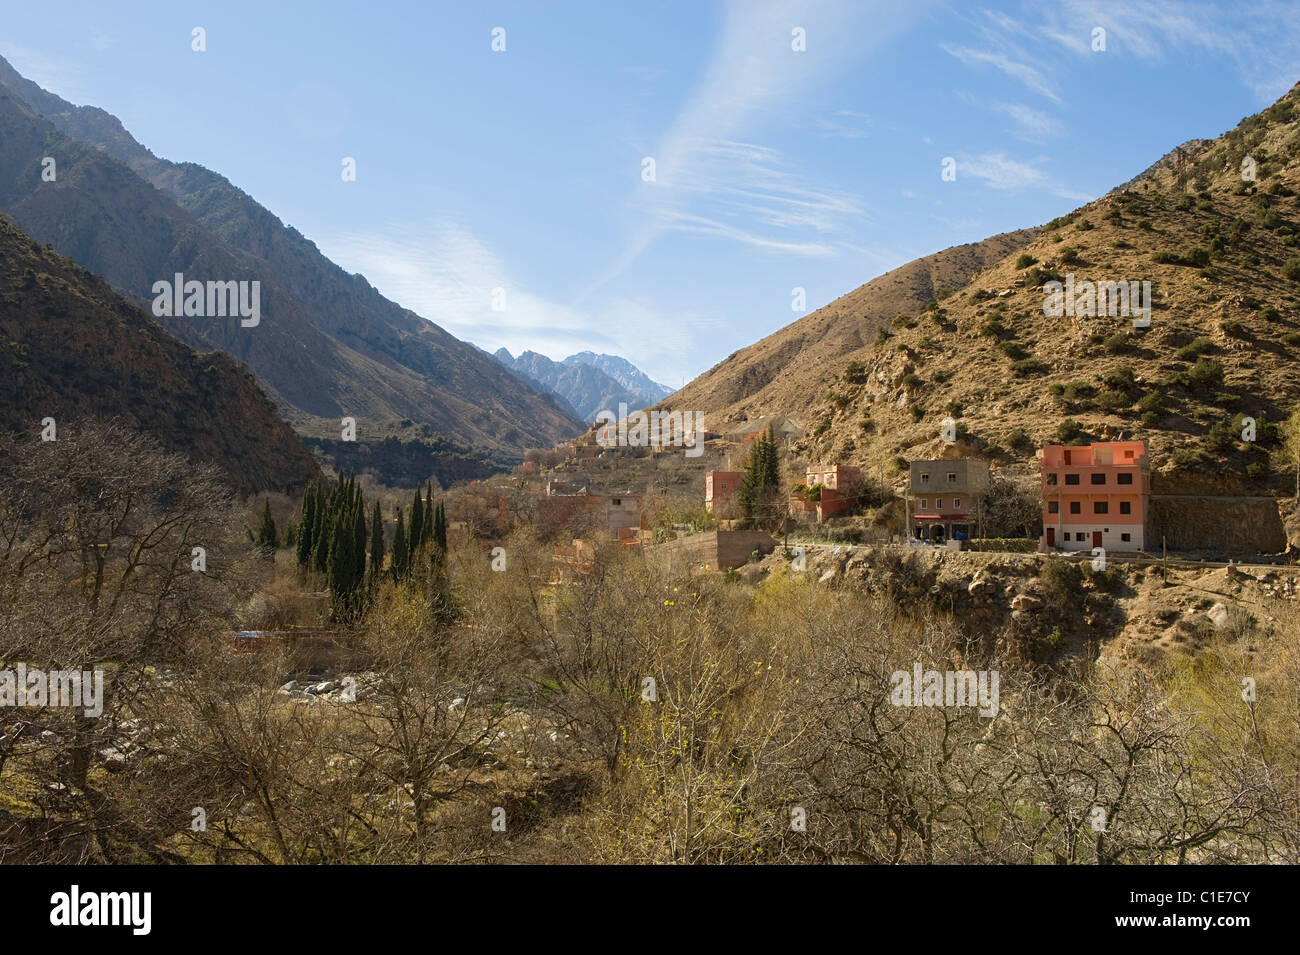 A view in the Ourika Valley - Stock Image